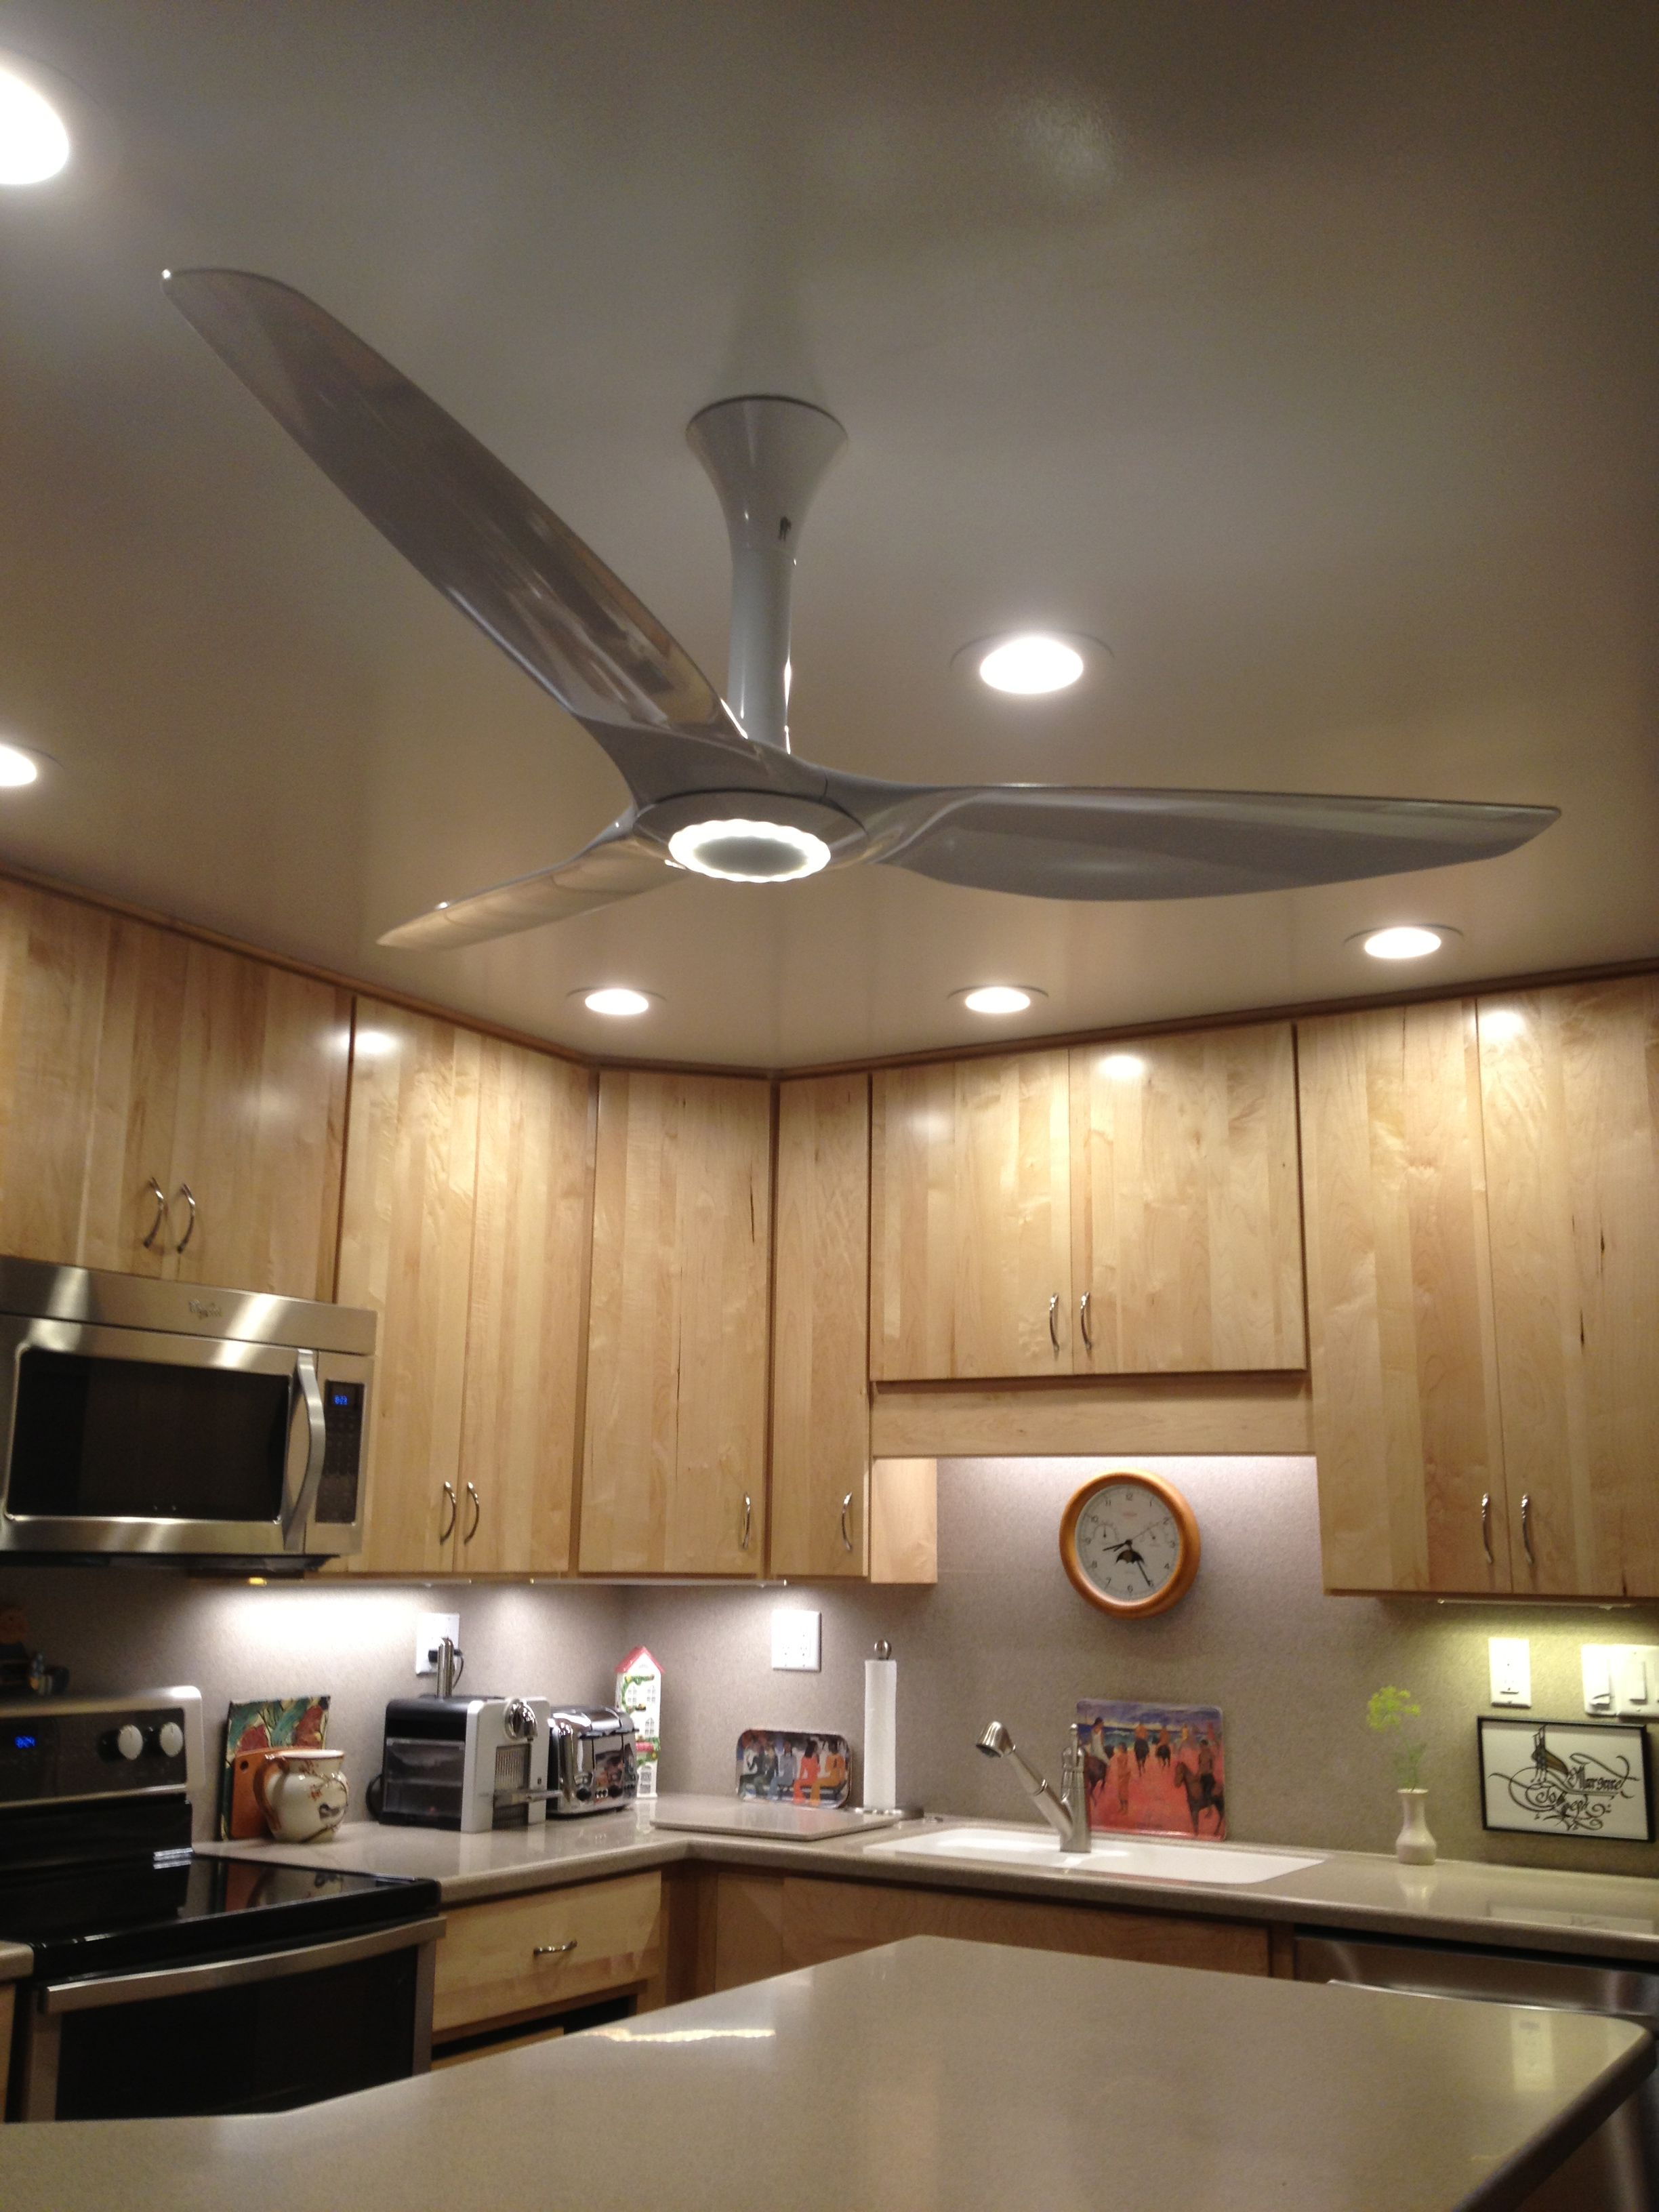 Kitchen Ceiling Fan Haiku Ceiling Fan In White Matrix Composite With Led Lighting